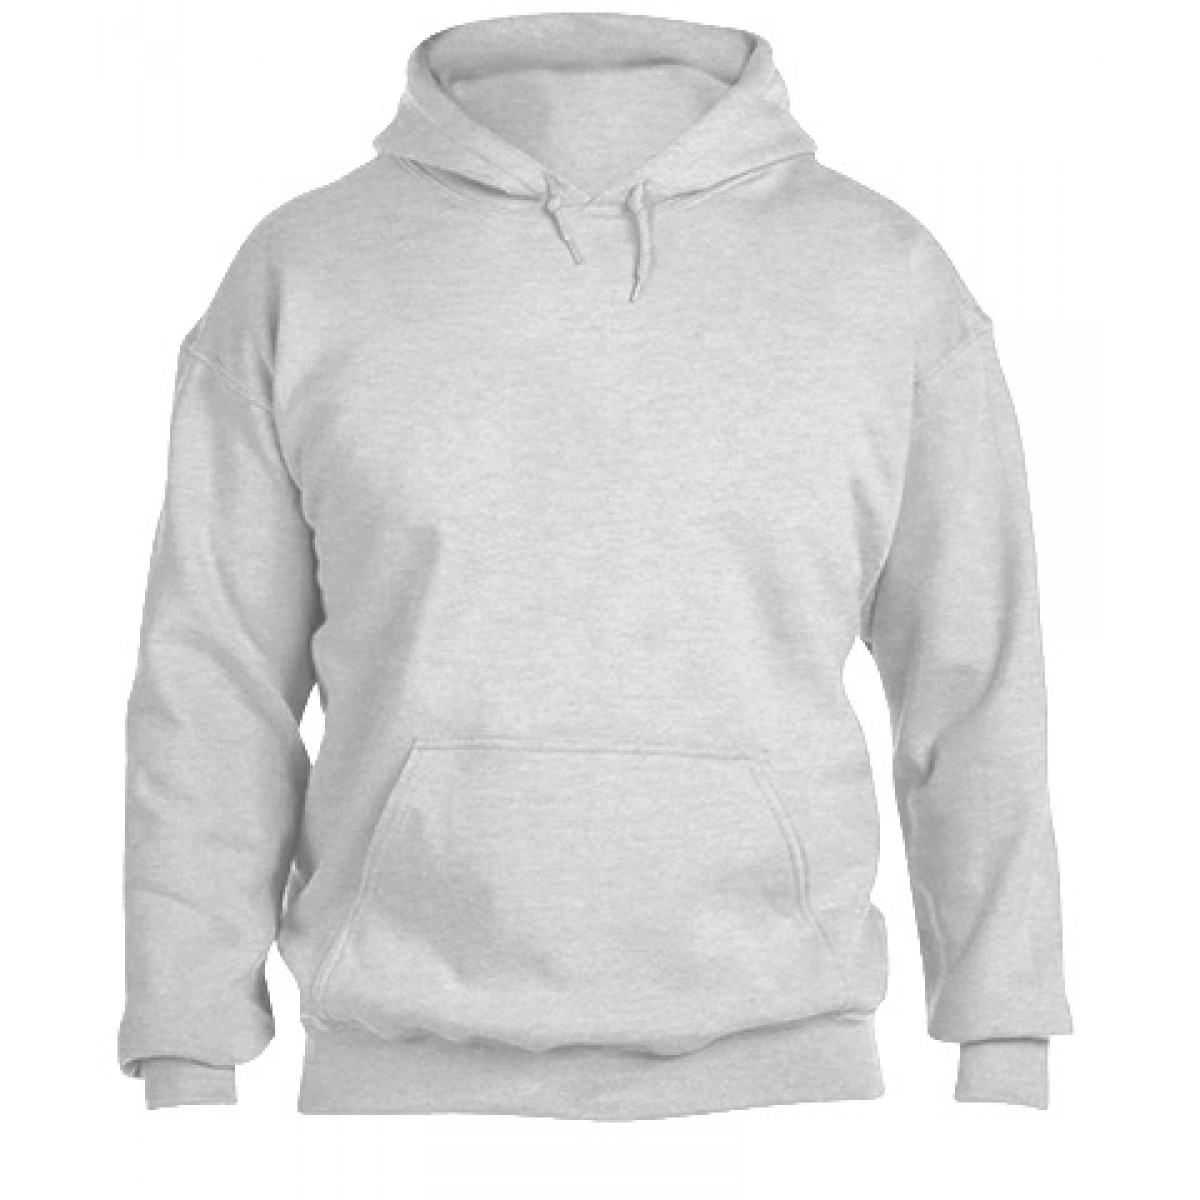 Solid Hooded Sweatshirt  50/50 Heavy Blend-Ash Gray-M